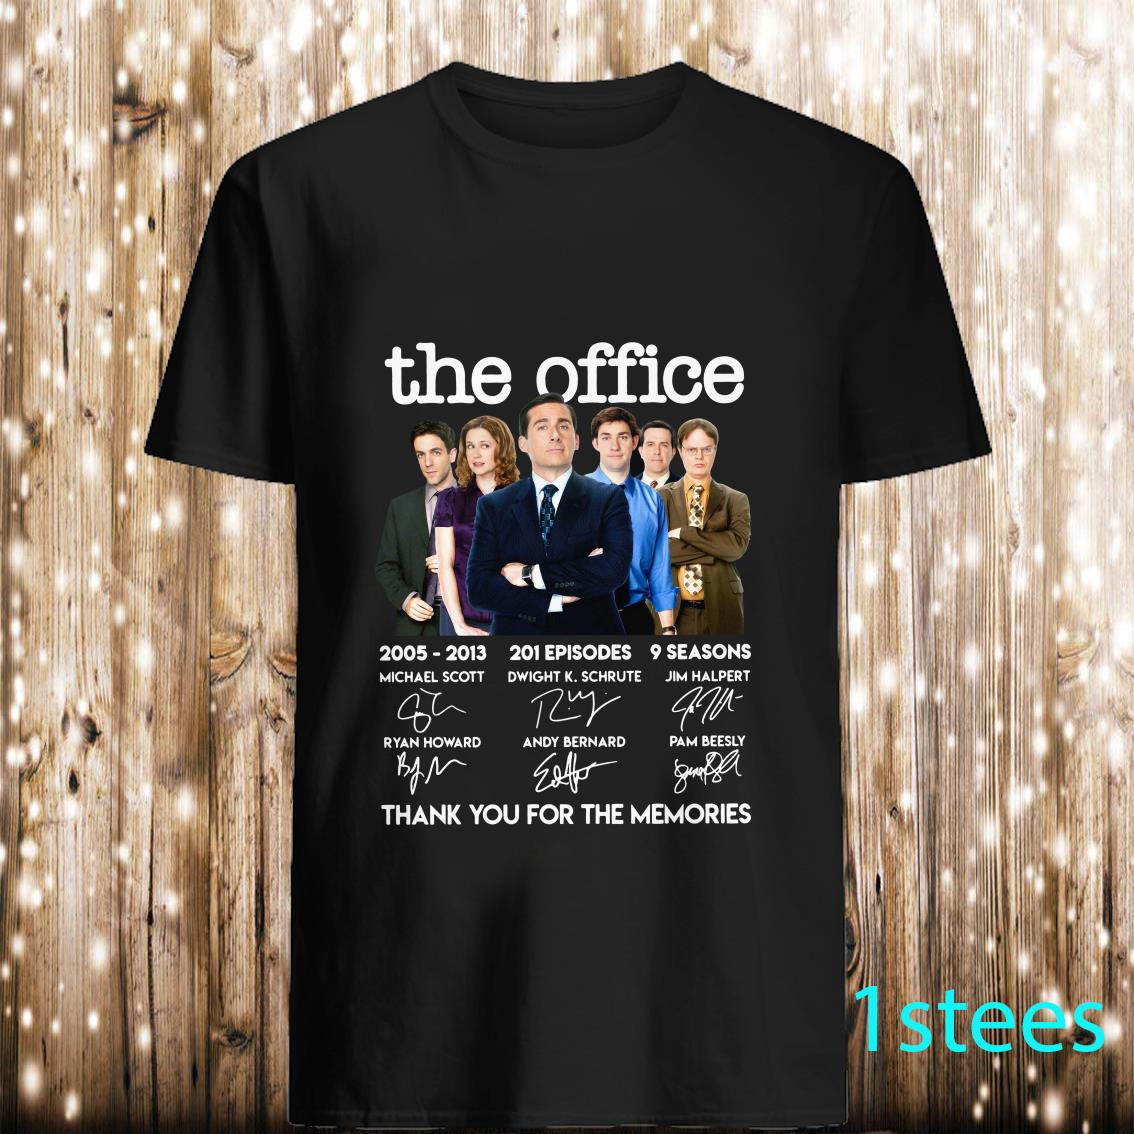 The Office Signature Thank You For The Memories Shirt